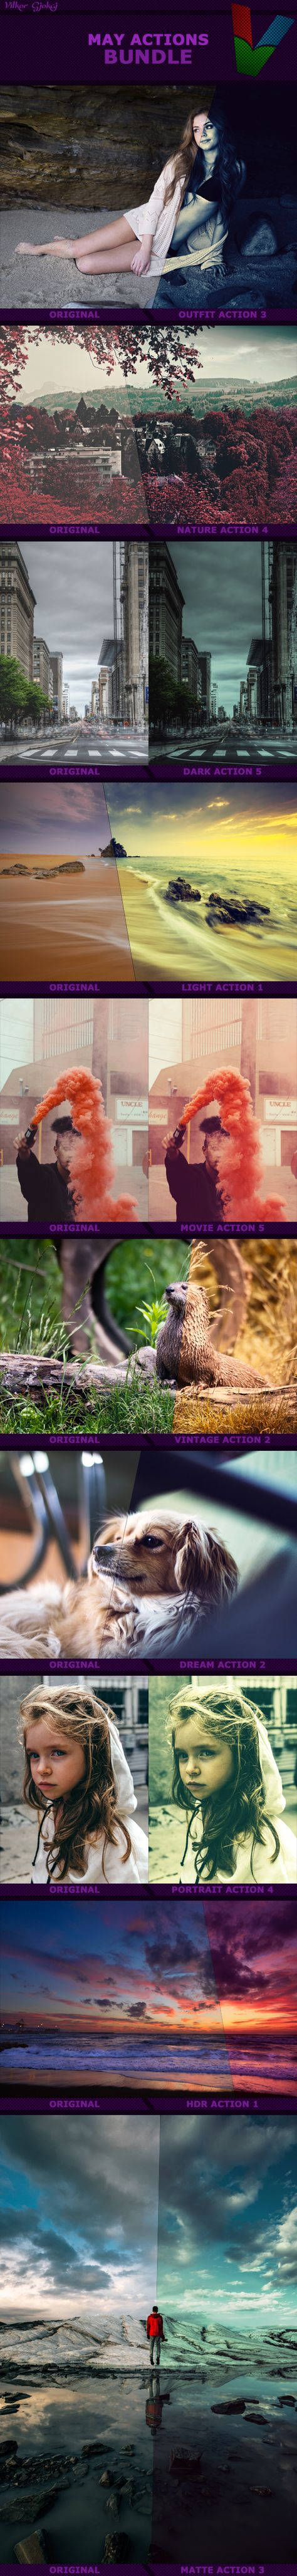 May #Photoshop #photoshopactions #photoediting #photography #colors #filters #resources #before #after #photo #photographer #love #instagram #retouching #skincare